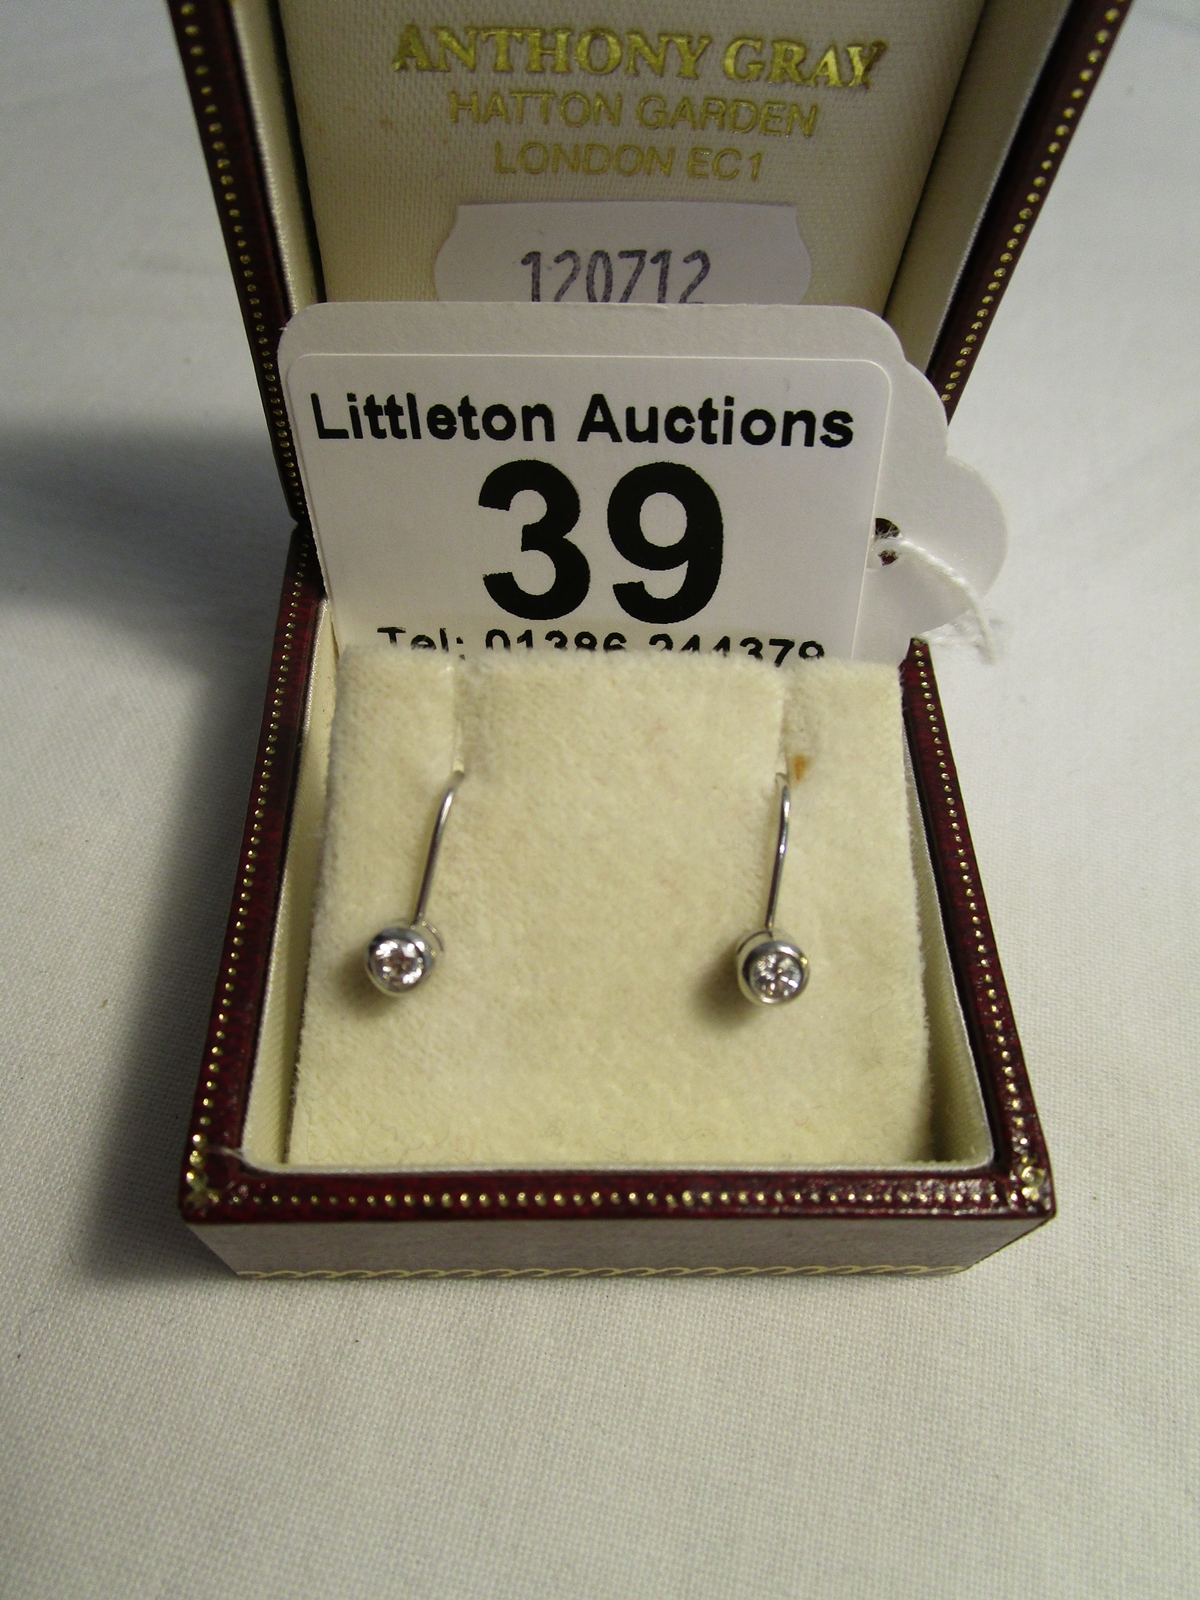 Lot 39 - Pair of diamond earrings, screw-on fitting, original box Anthony Gray, Hatton Garden